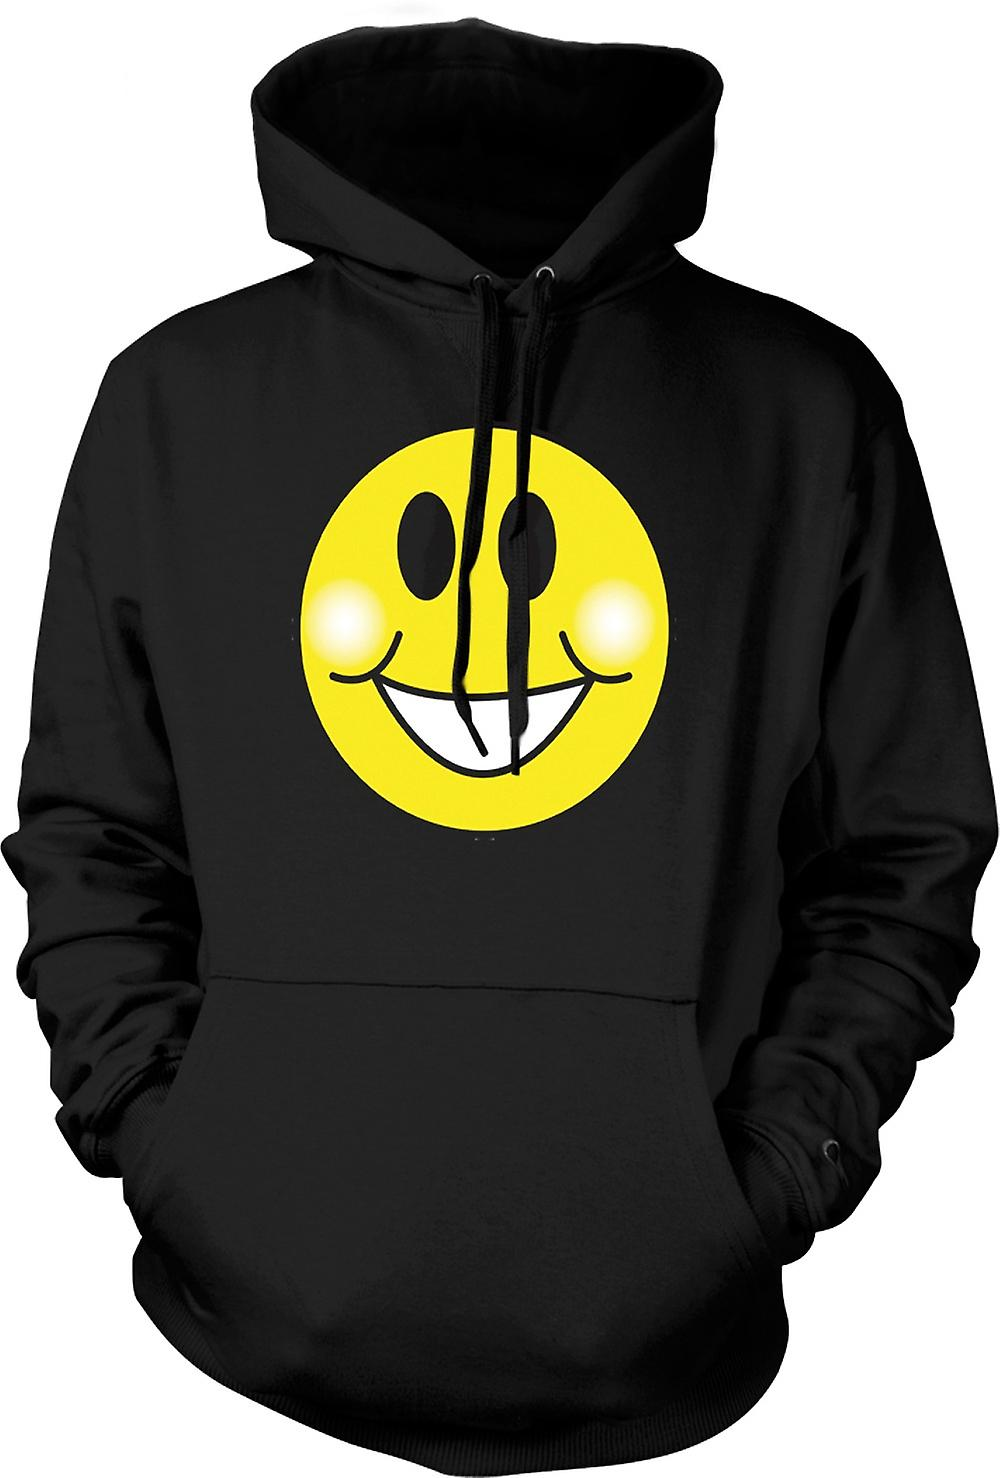 Mens Hoodie - Smiley Face - Chubby Cheeks - Acid House